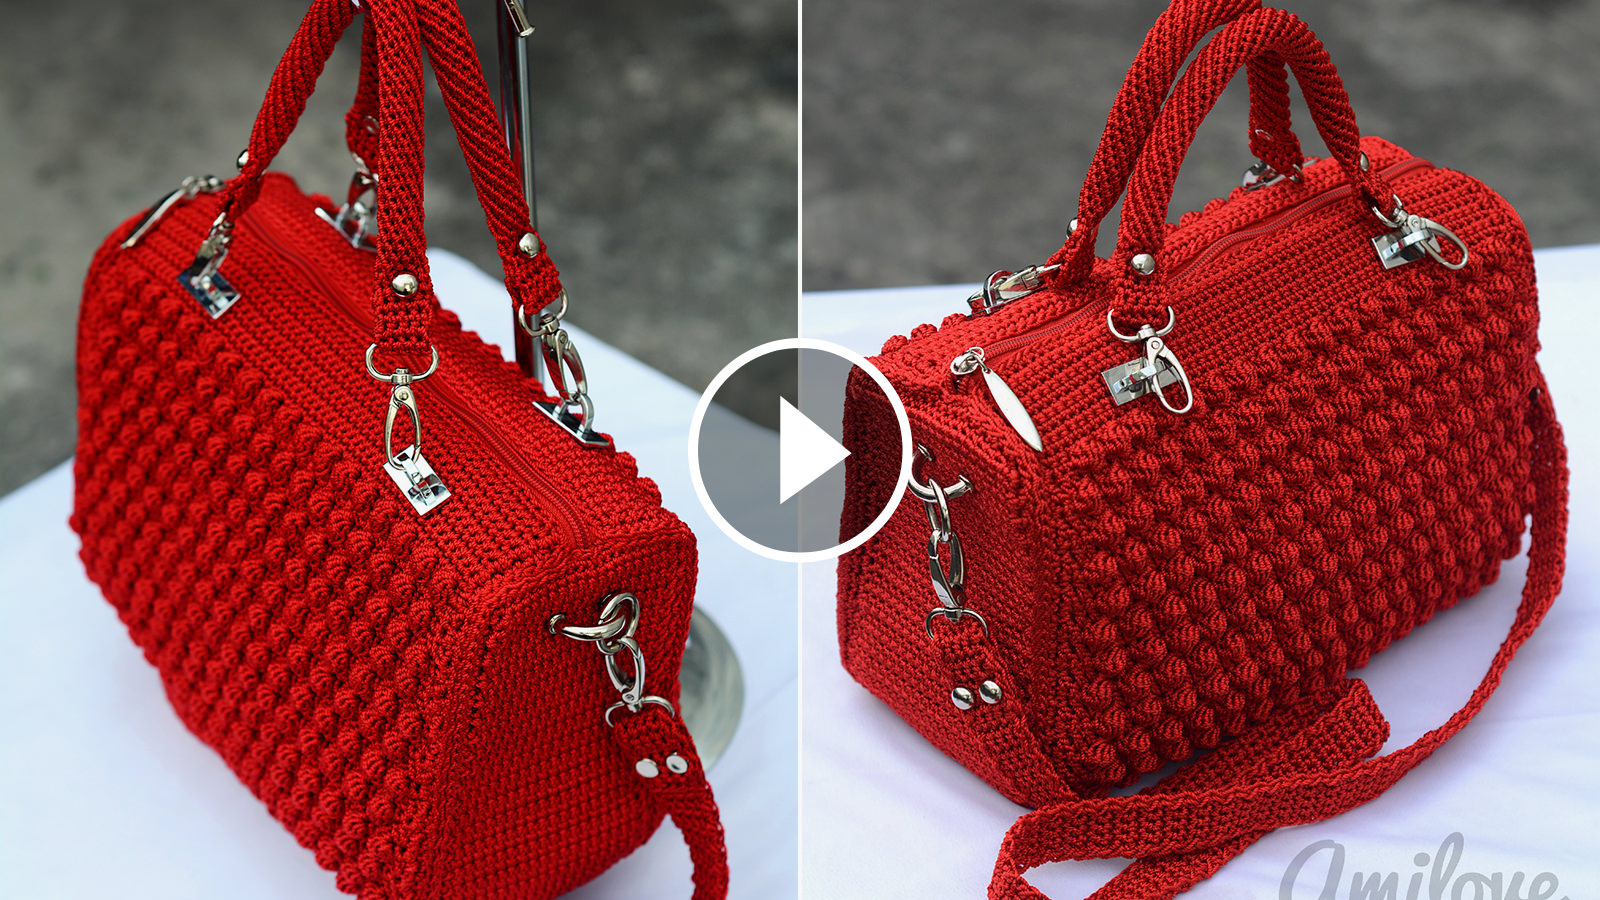 Bobble Stitch Handbag Crochet Pattern Featured Image